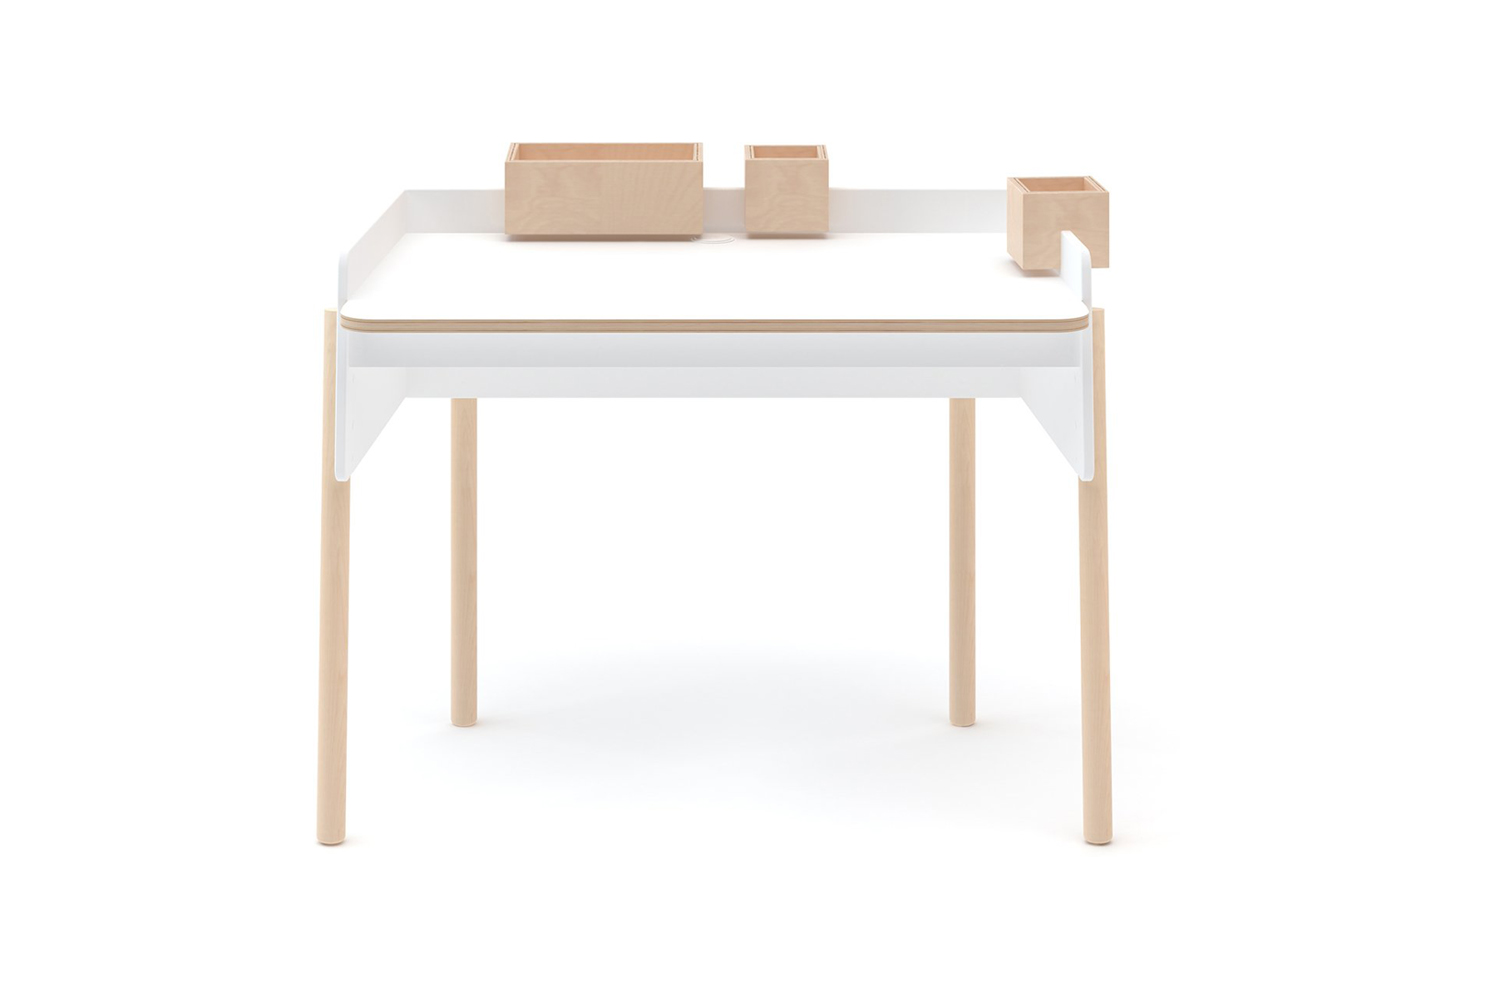 The Oeuf Brooklyn Desk in wood and white paint is $590 at Horne.